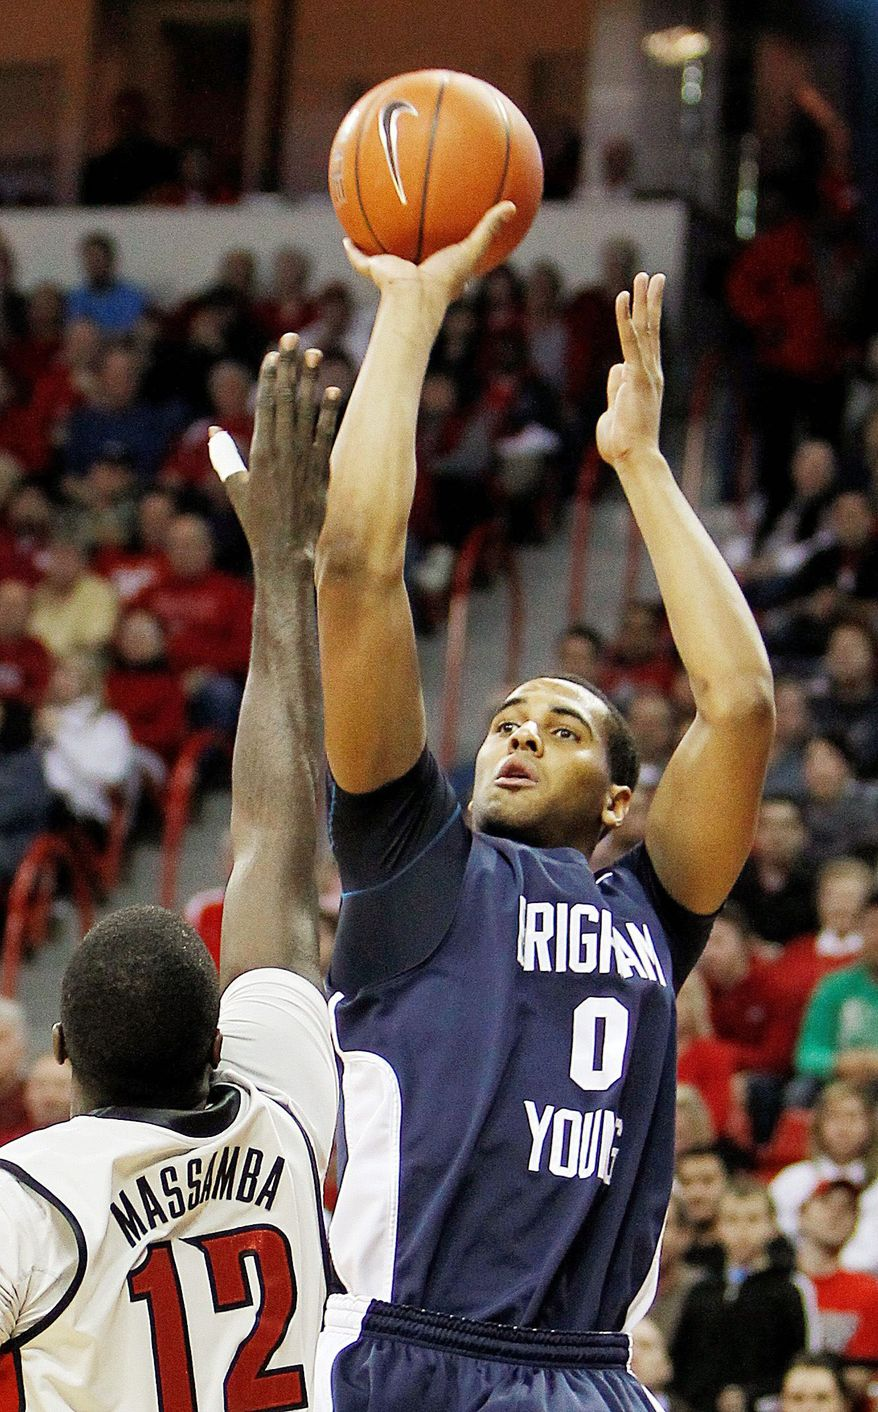 MARCH SADNESS: Brandon Davies has been suspended from the BYU basketball team for the rest of the season for violating the school's honor code. (Associated Press)